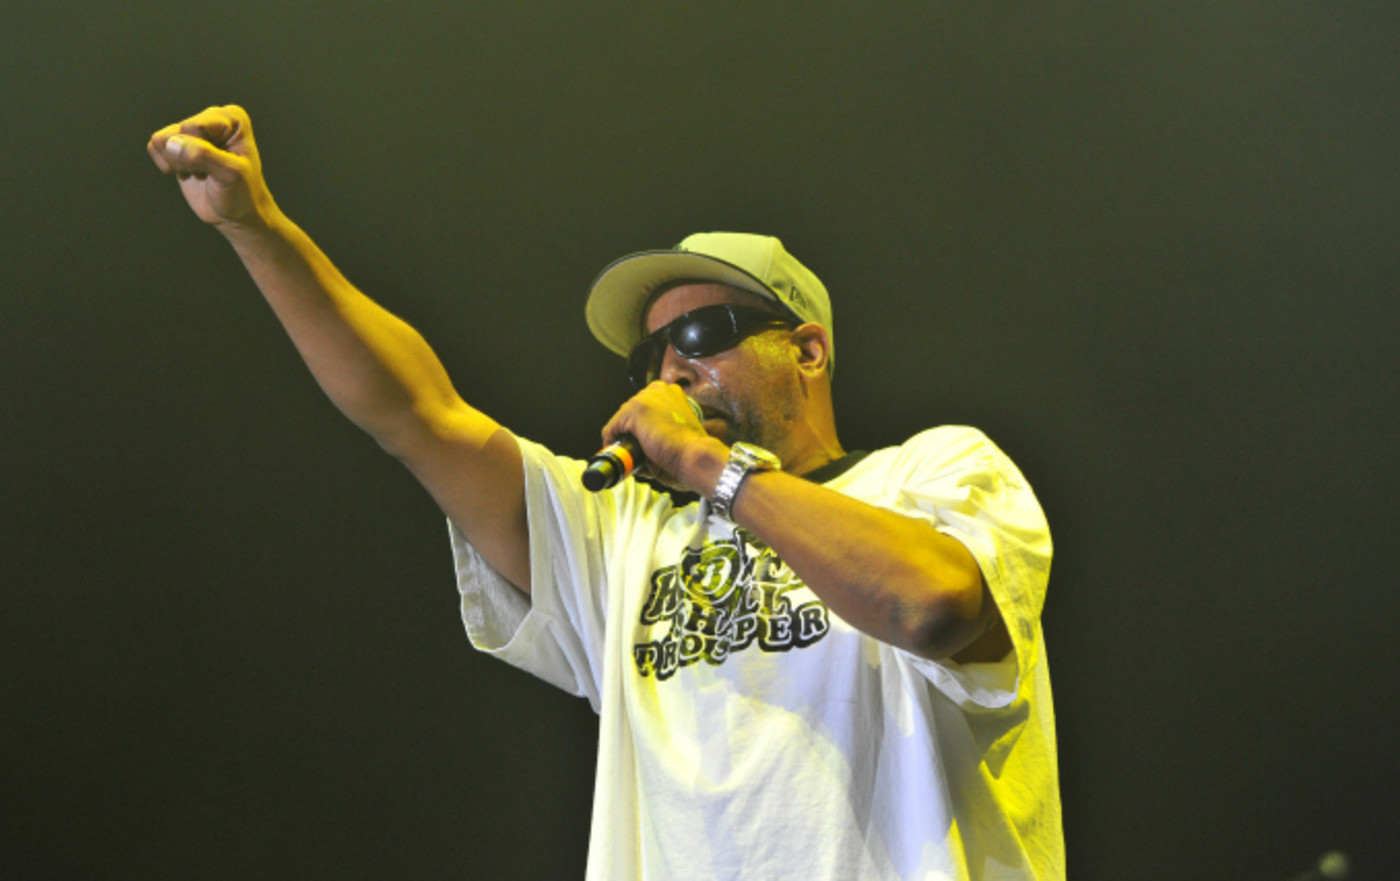 Tone Loc peforms on stage during the I Love the 90s concert